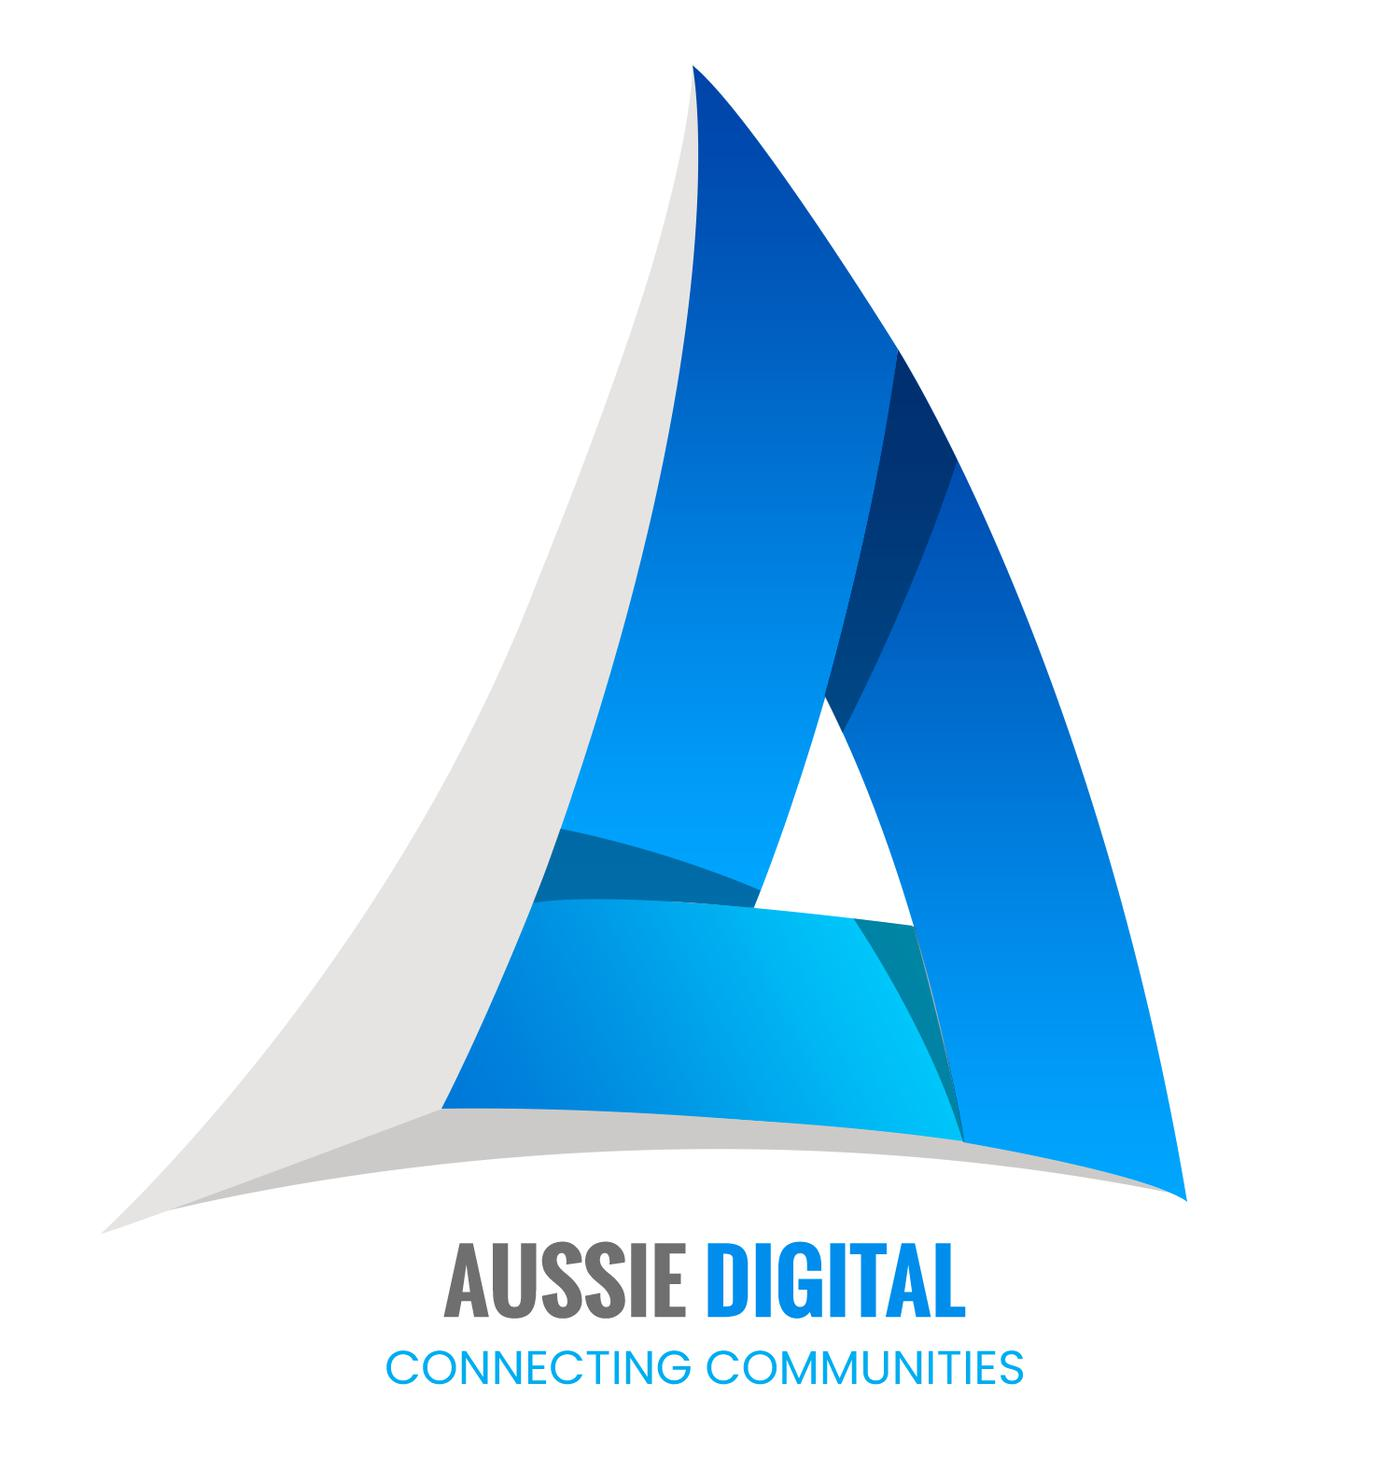 Aussie Digital (AUD)